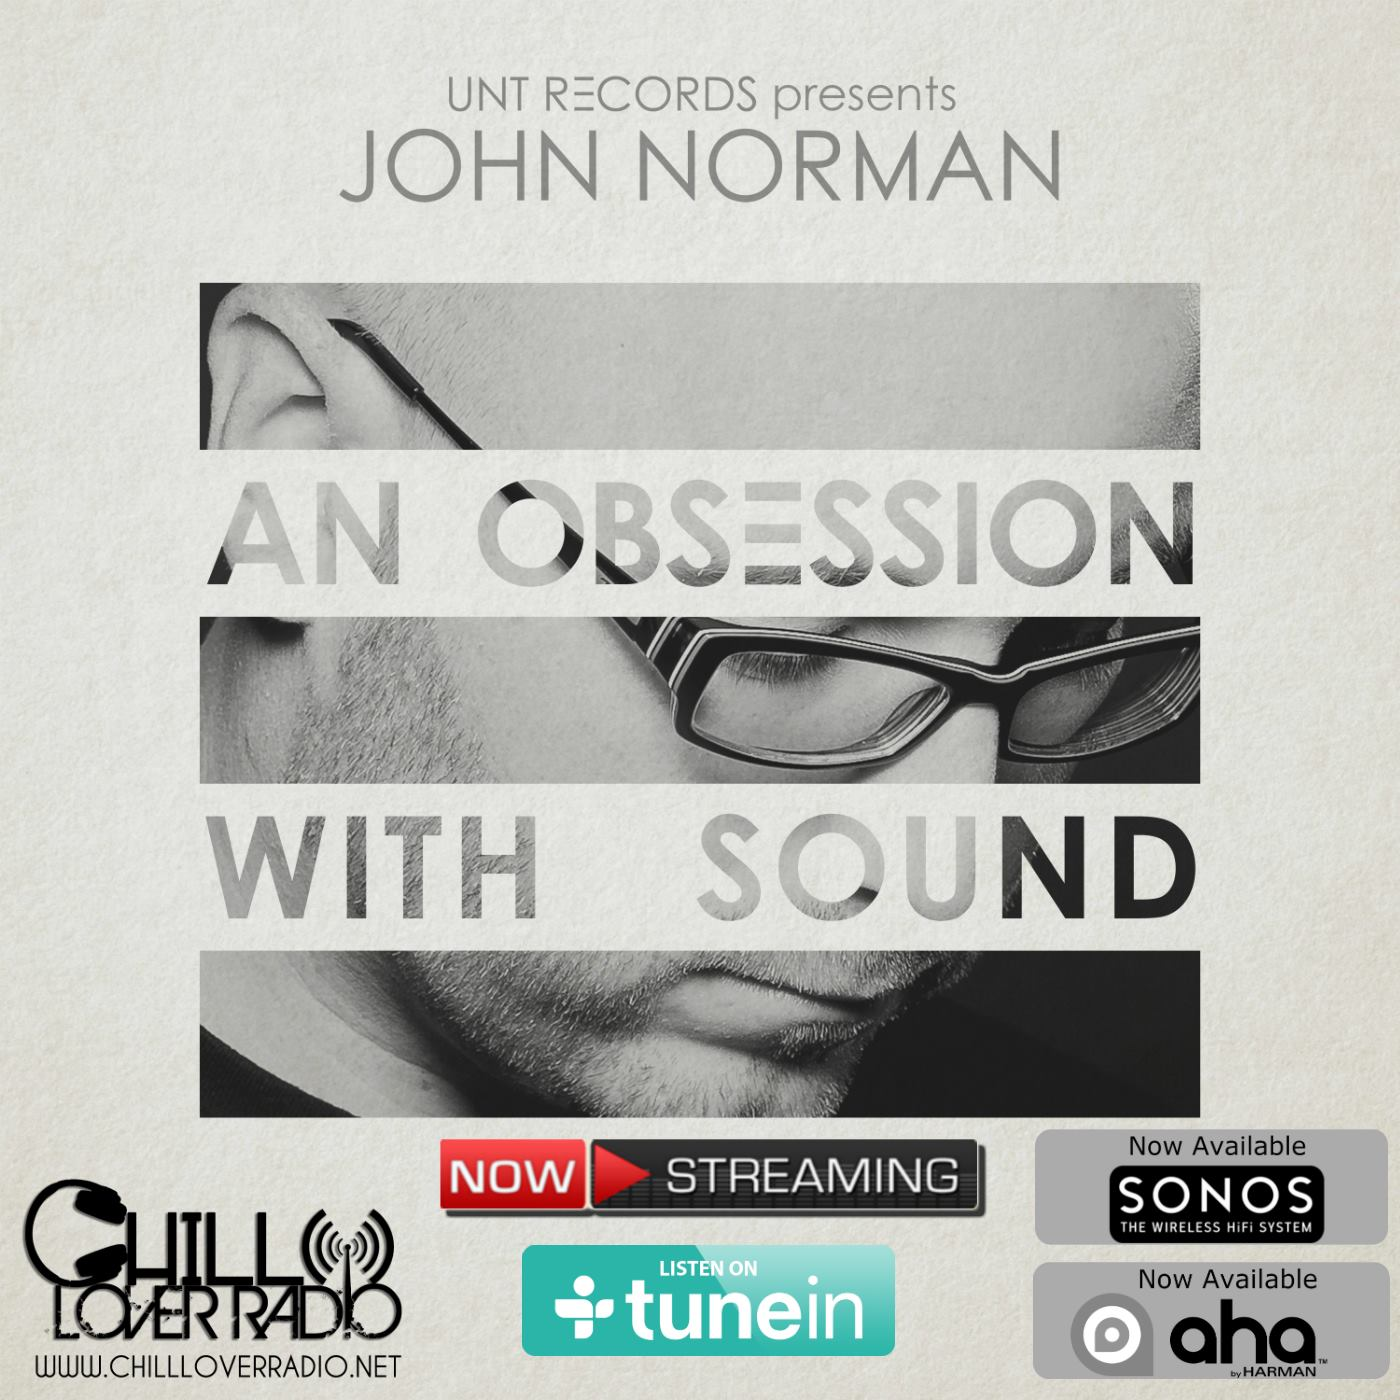 An Obsession With Sound is now partnering with Chill Lover Radio out of New York City -- the show airs Thursdays at 7pm EST. Streaming via the Chillloverradio.net website, tunein app, SONOS, aha app & more.